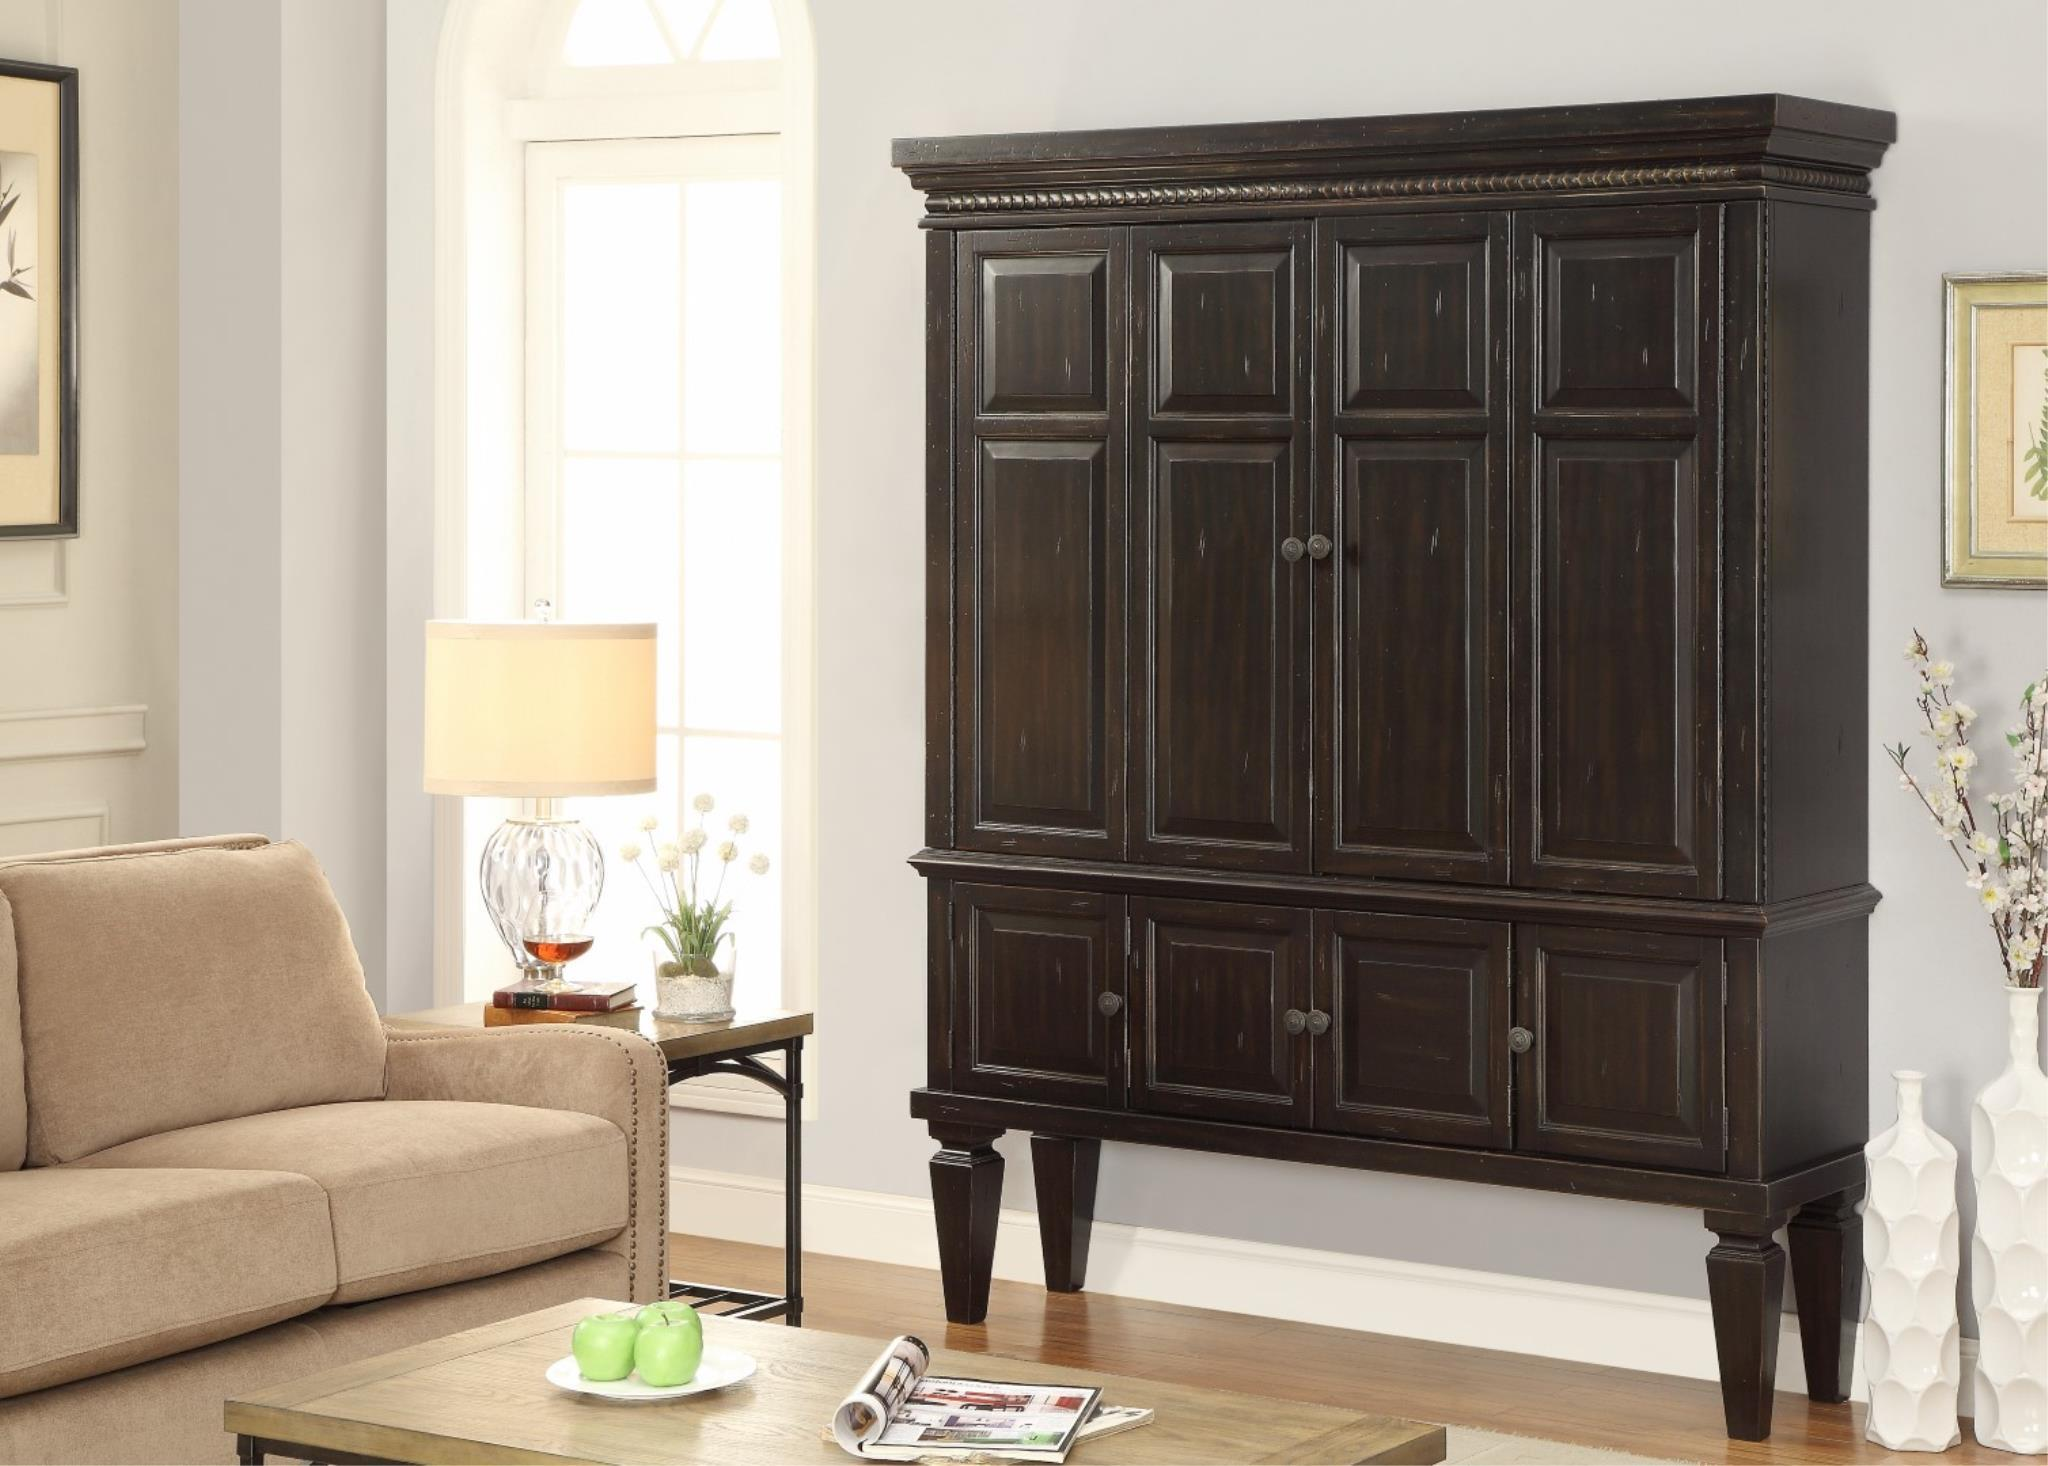 Morris Home Furnishings Valona Valona 2-Piece Entertainment Armoire - Item Number: 256294491